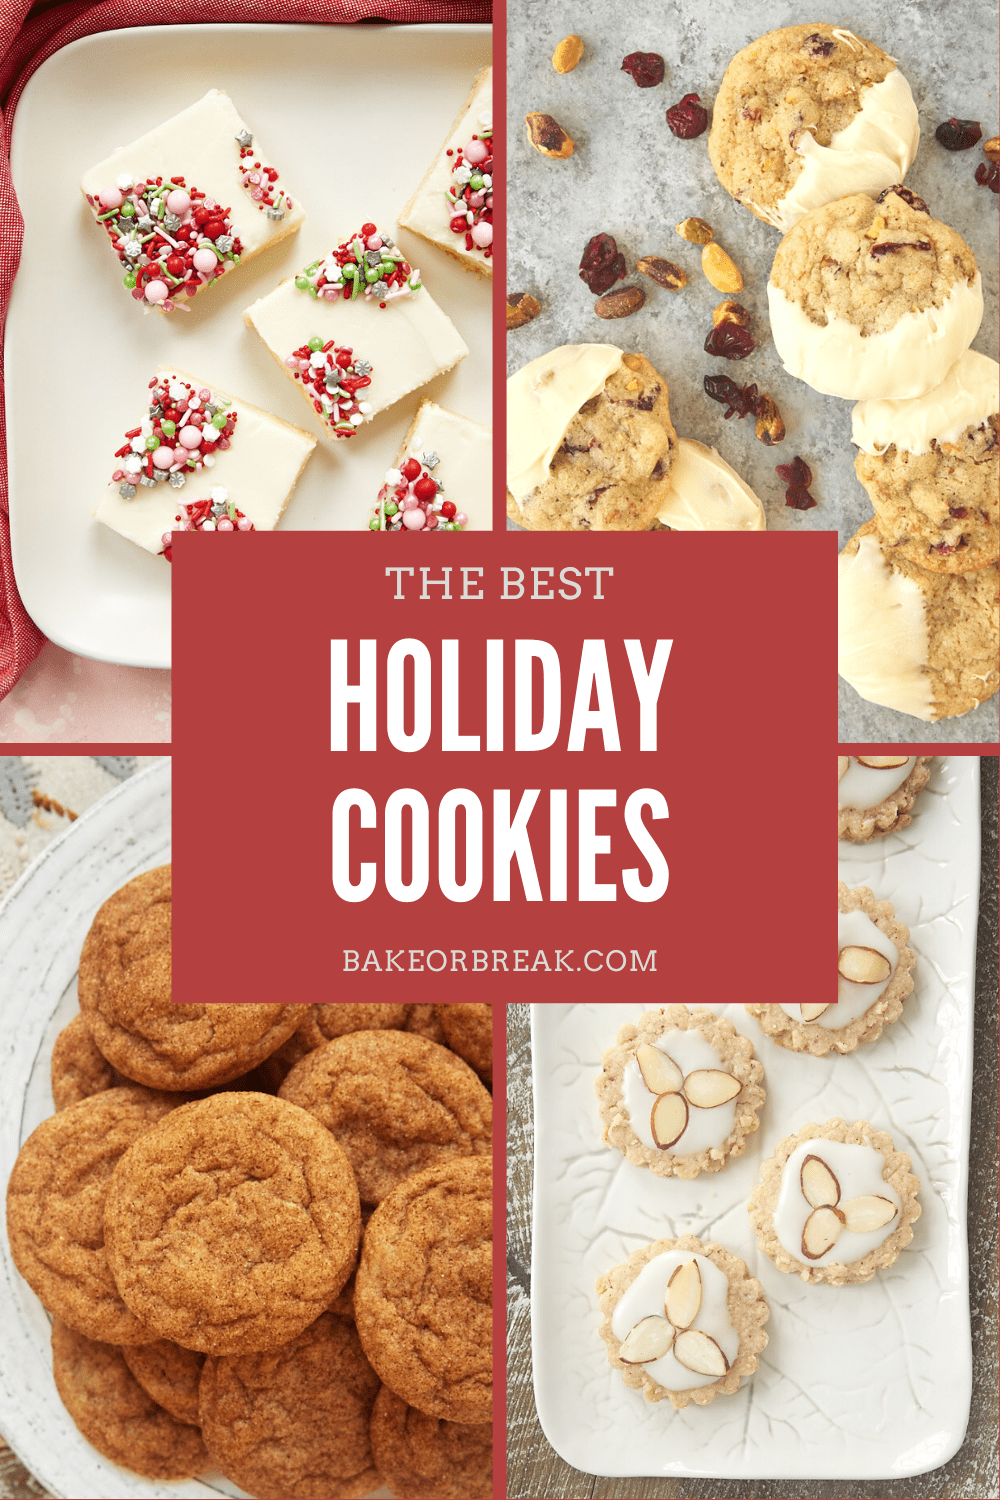 The Best Holiday Cookies bakeorbreak.com